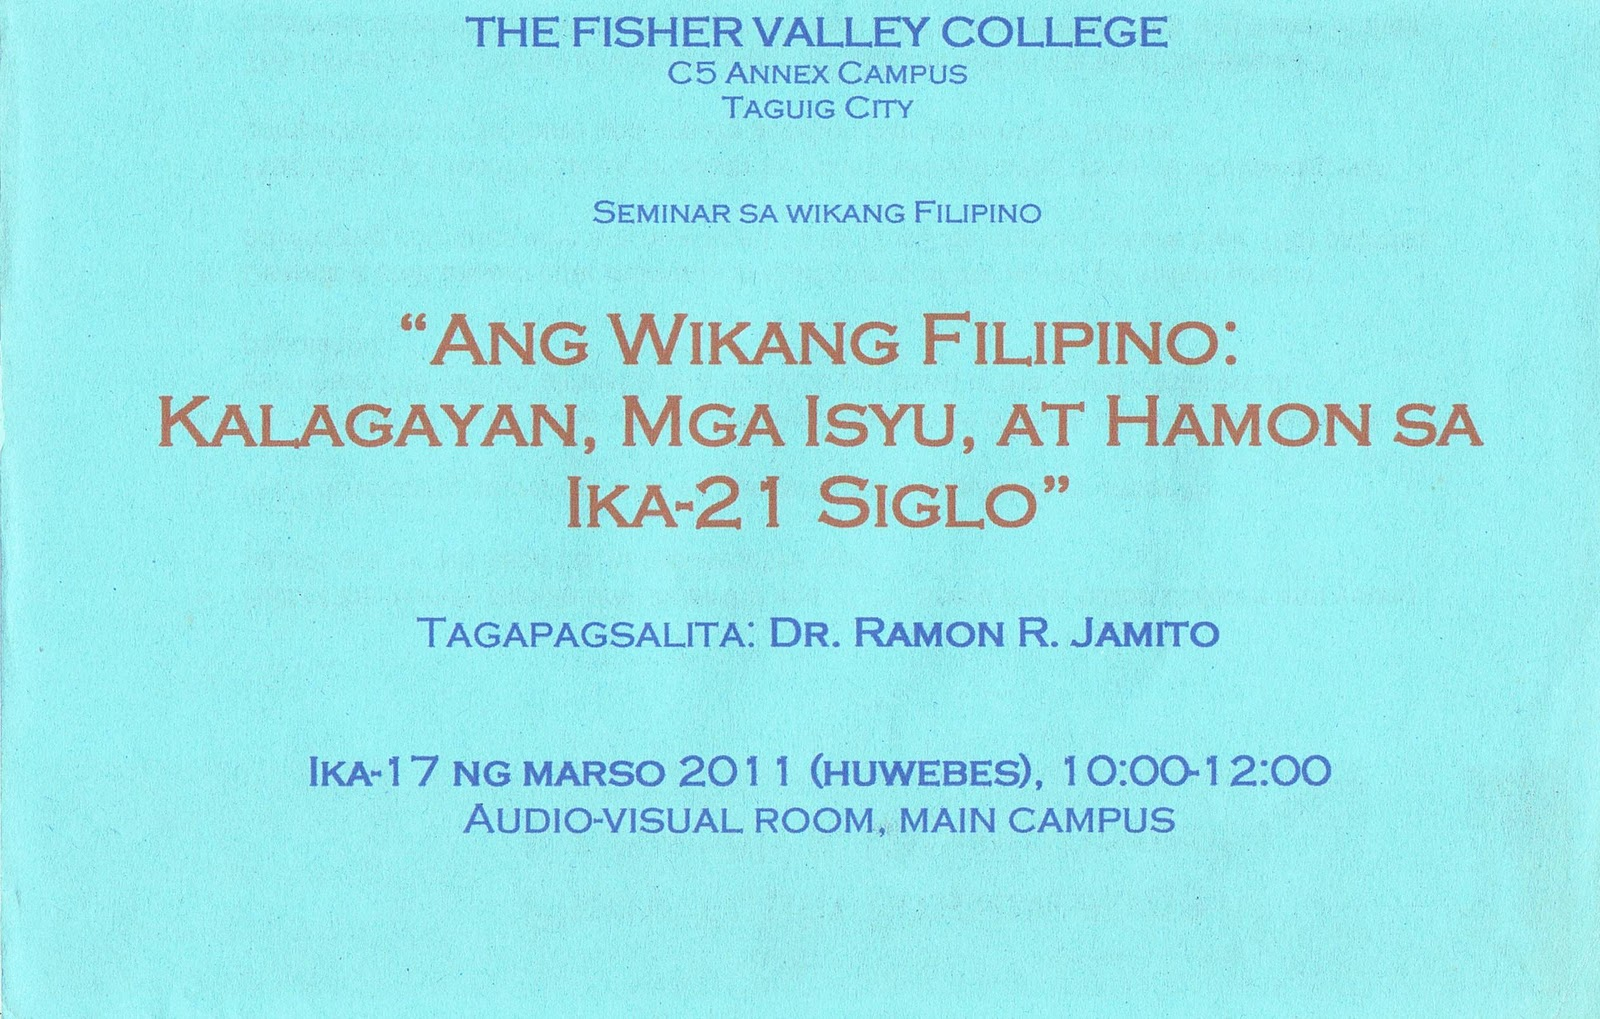 The fisher valley college seminar sa wikang filipino 0 comments yadclub Gallery